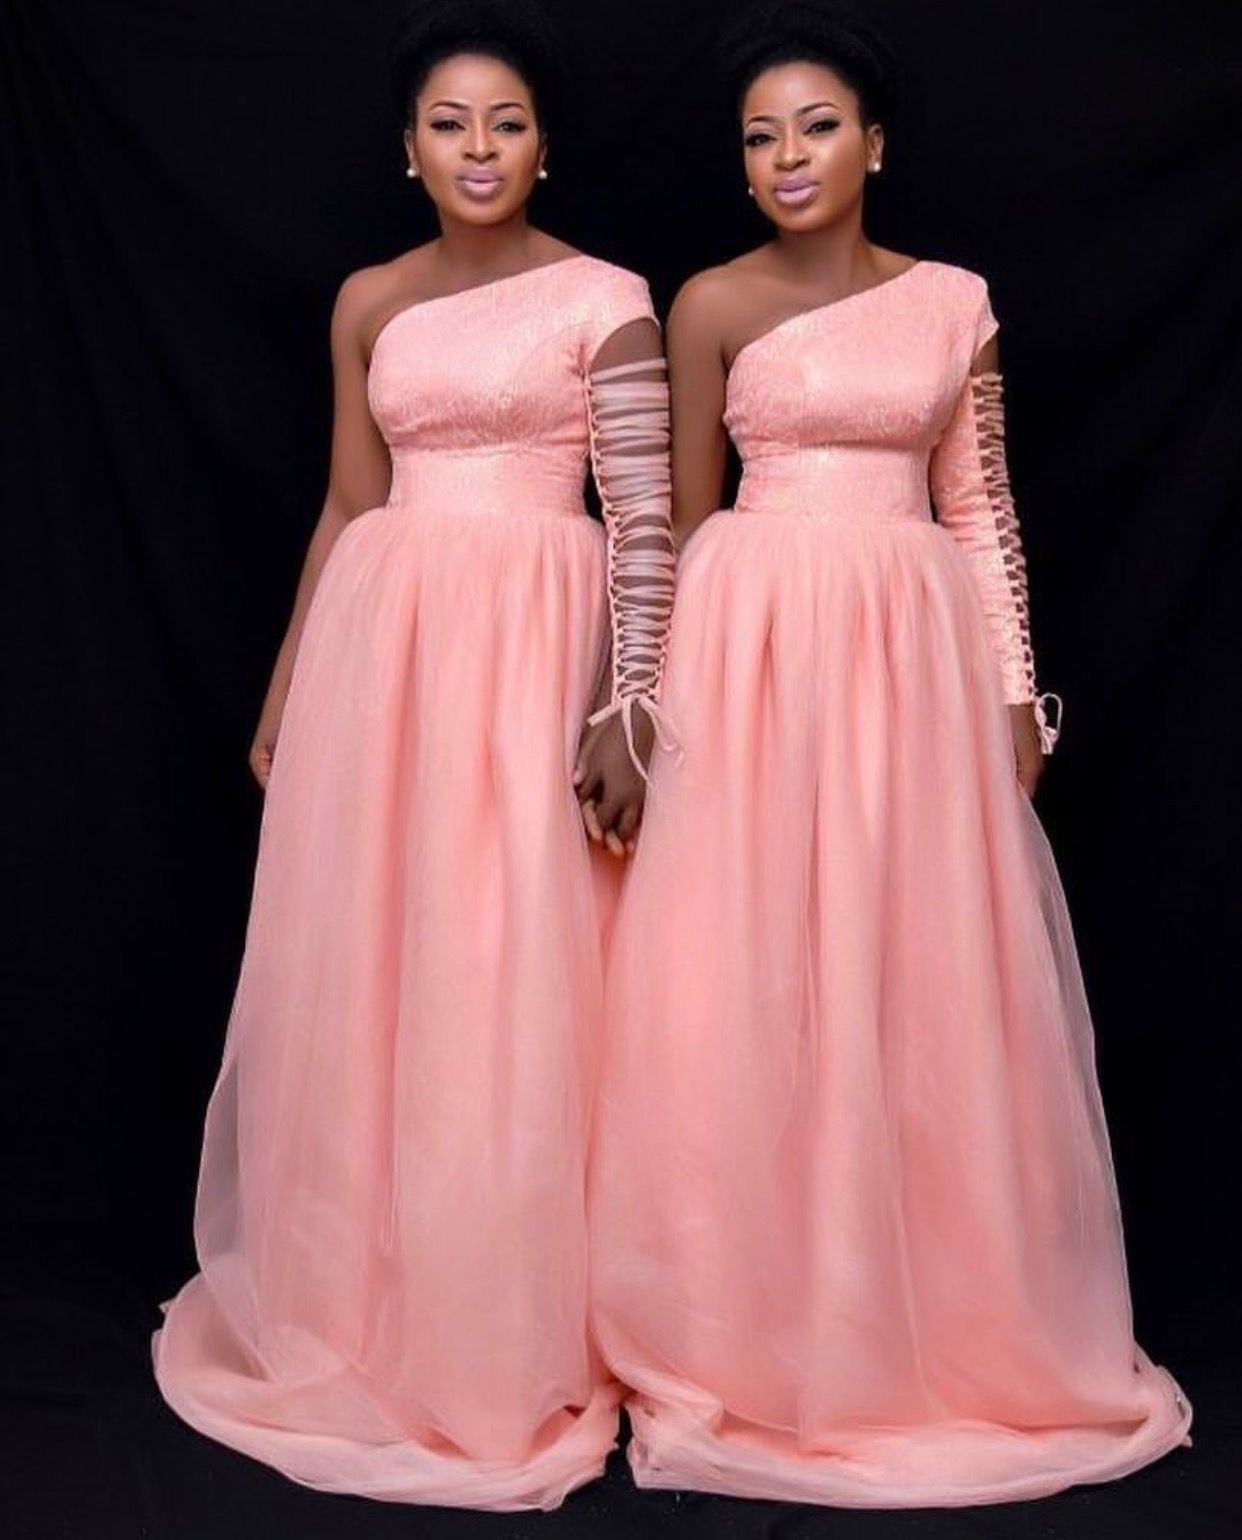 Fashion dress for wedding party  Pin by fola ofere on Maxis  Pinterest  African fashion ankara